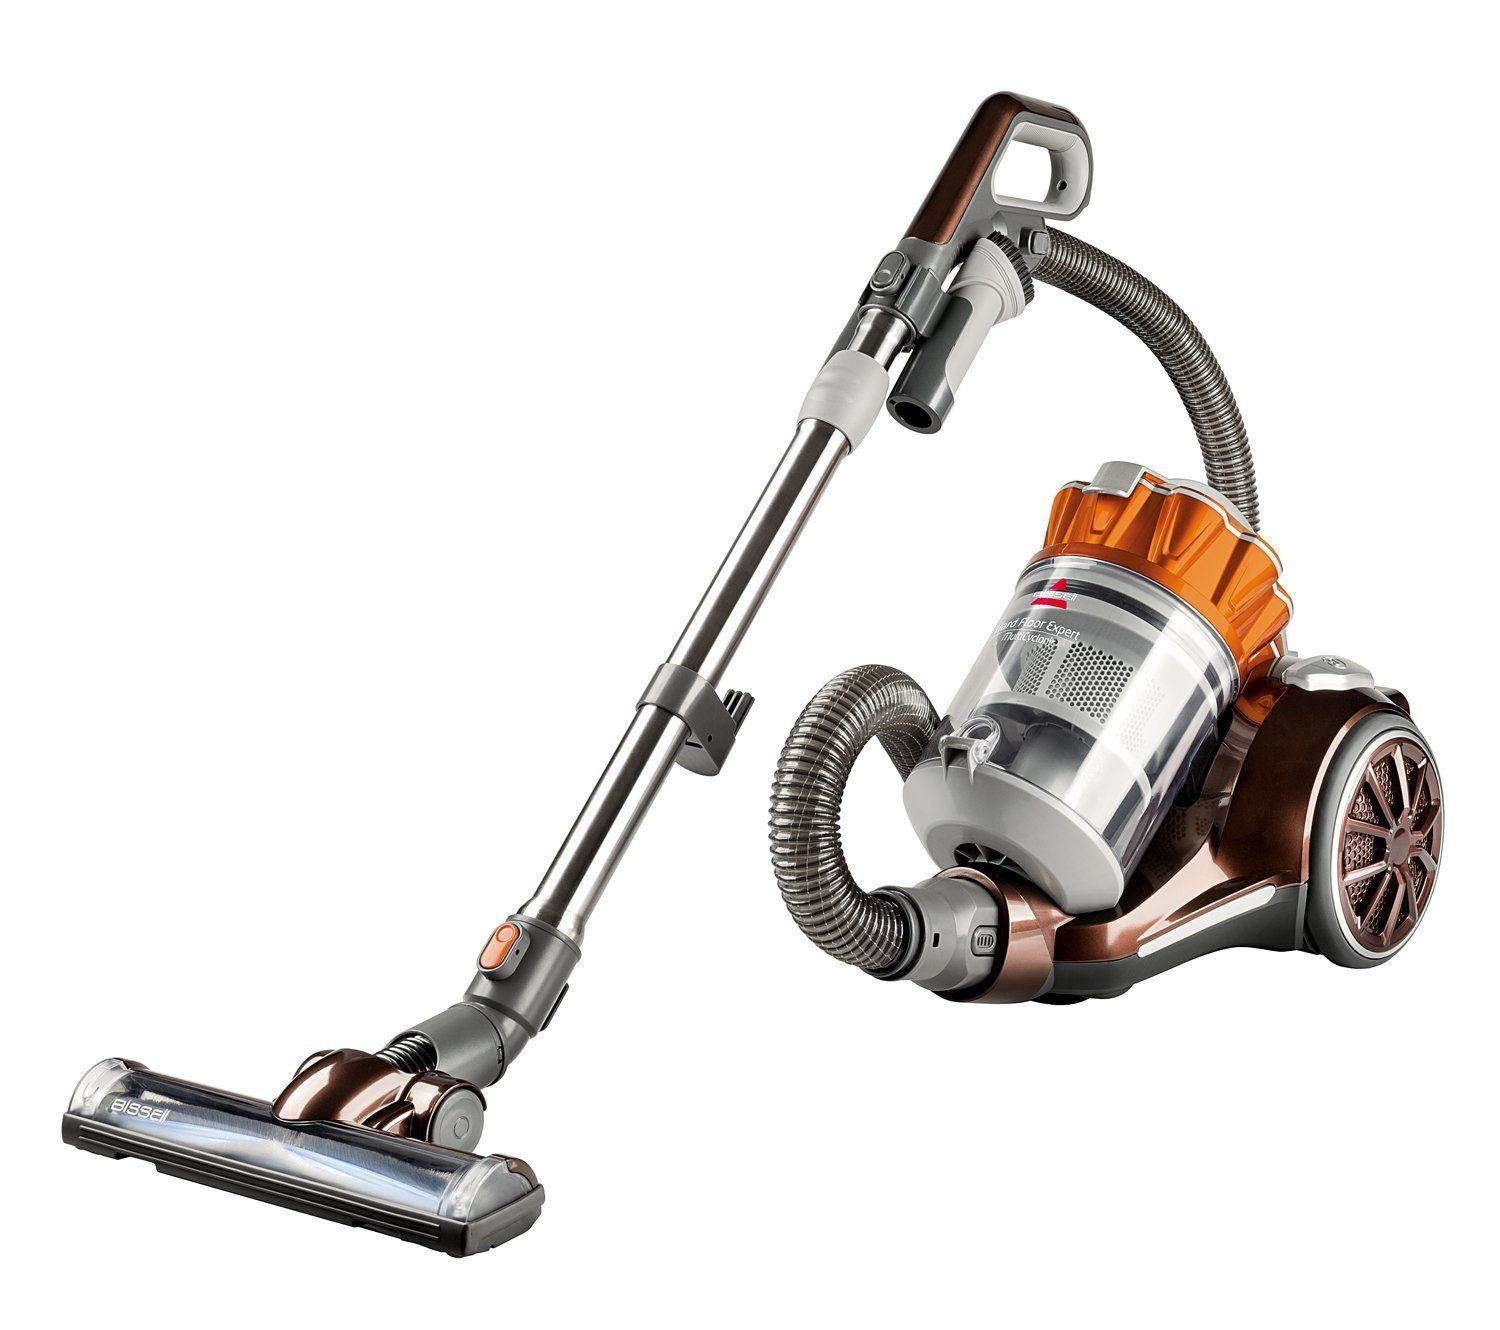 Review: Bissell Hard Floor 1547 Vacuum Cleaner